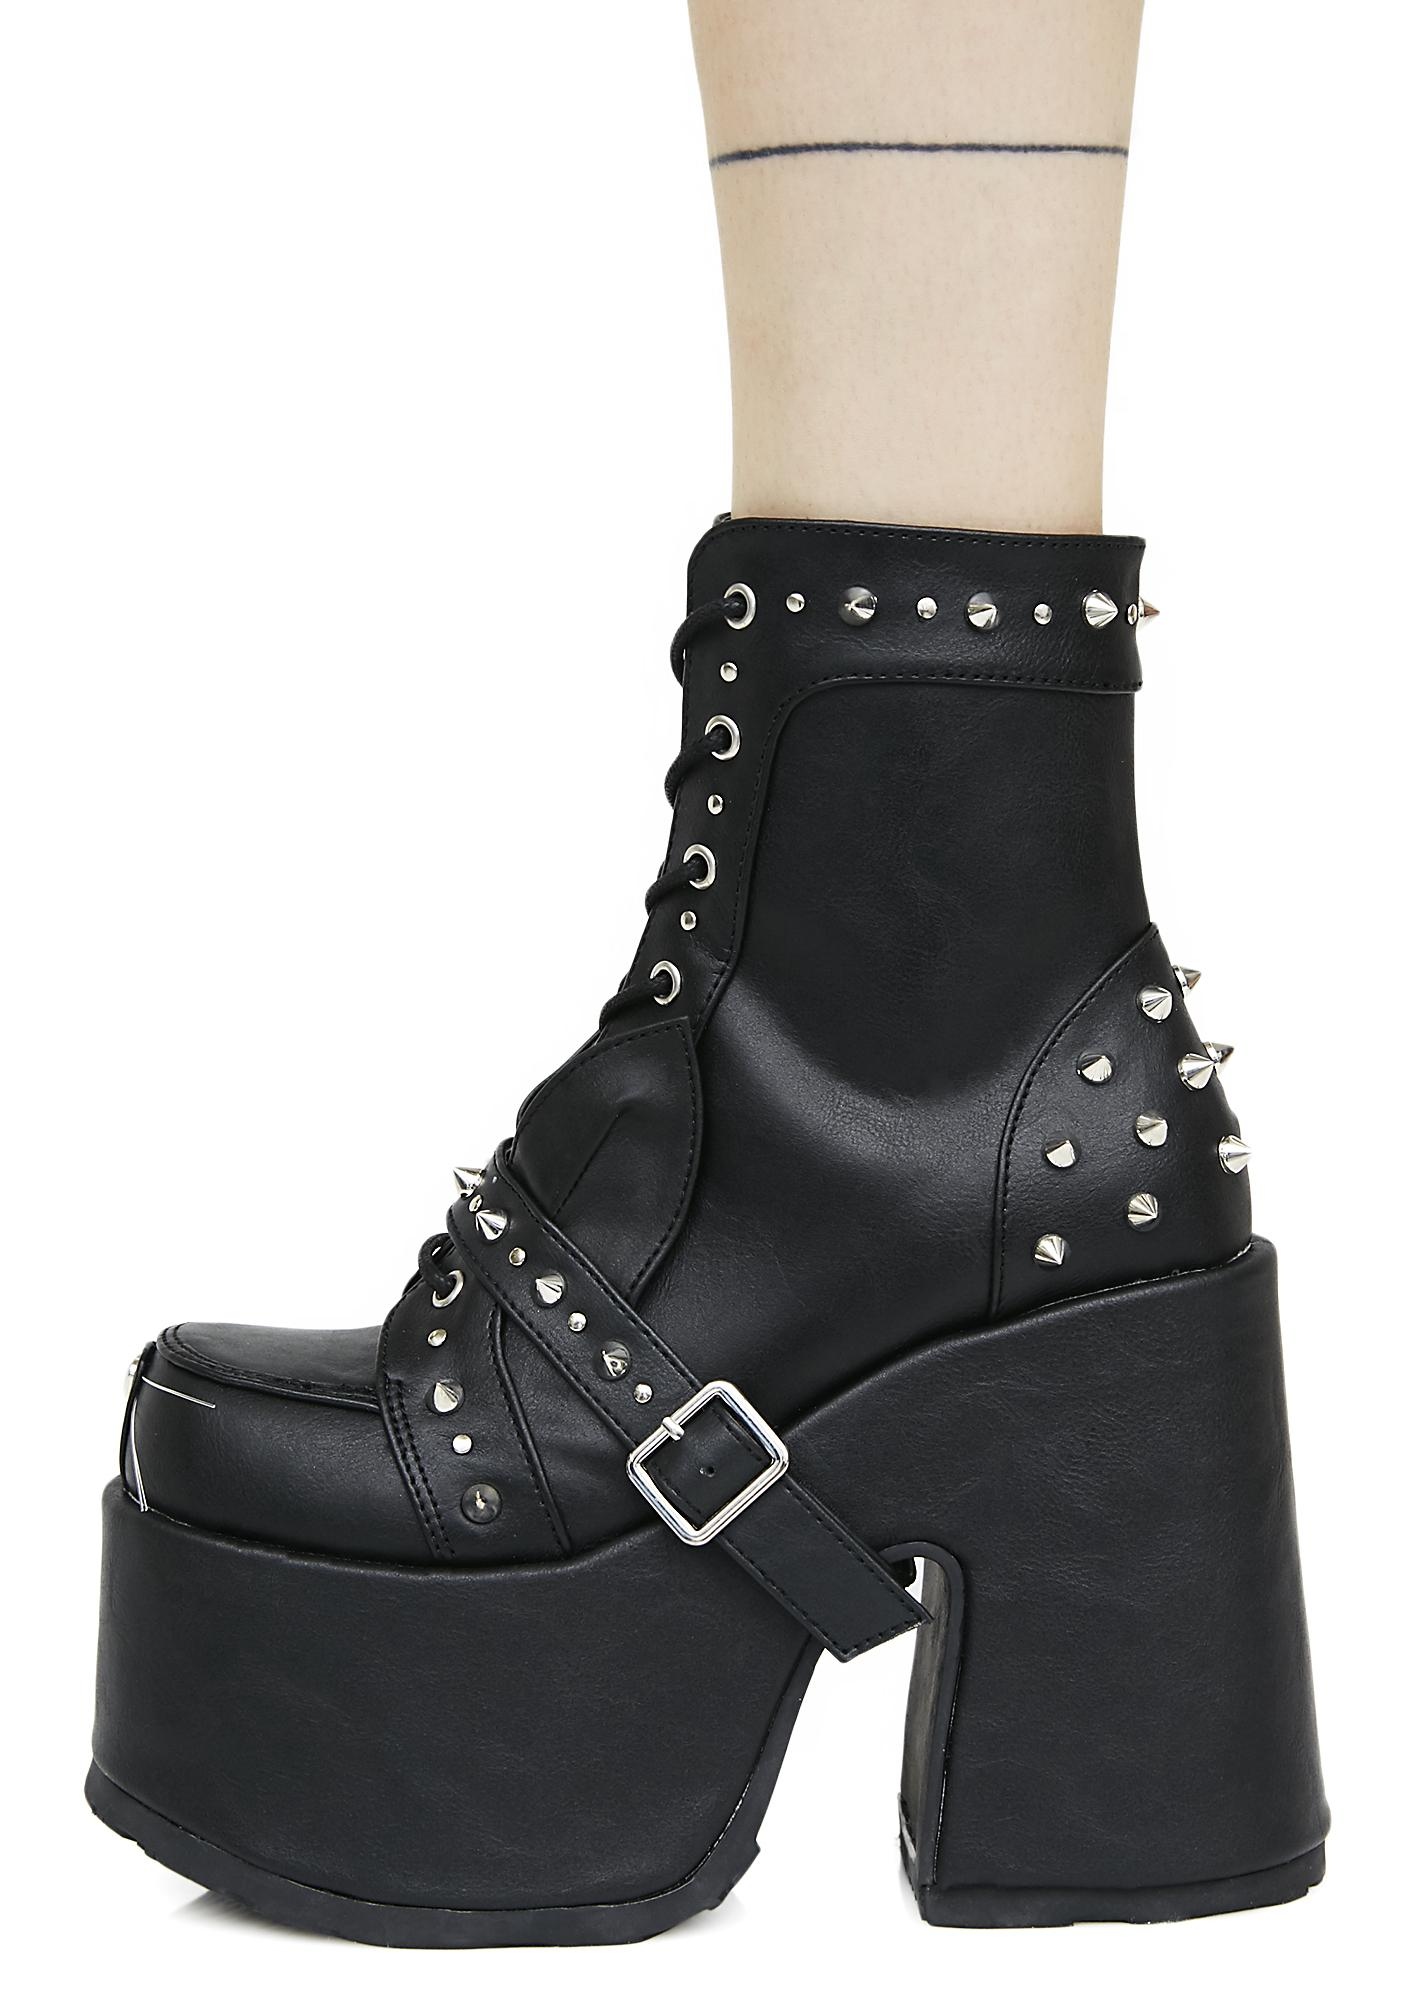 Demonia Wicked Woodland Platform Boots